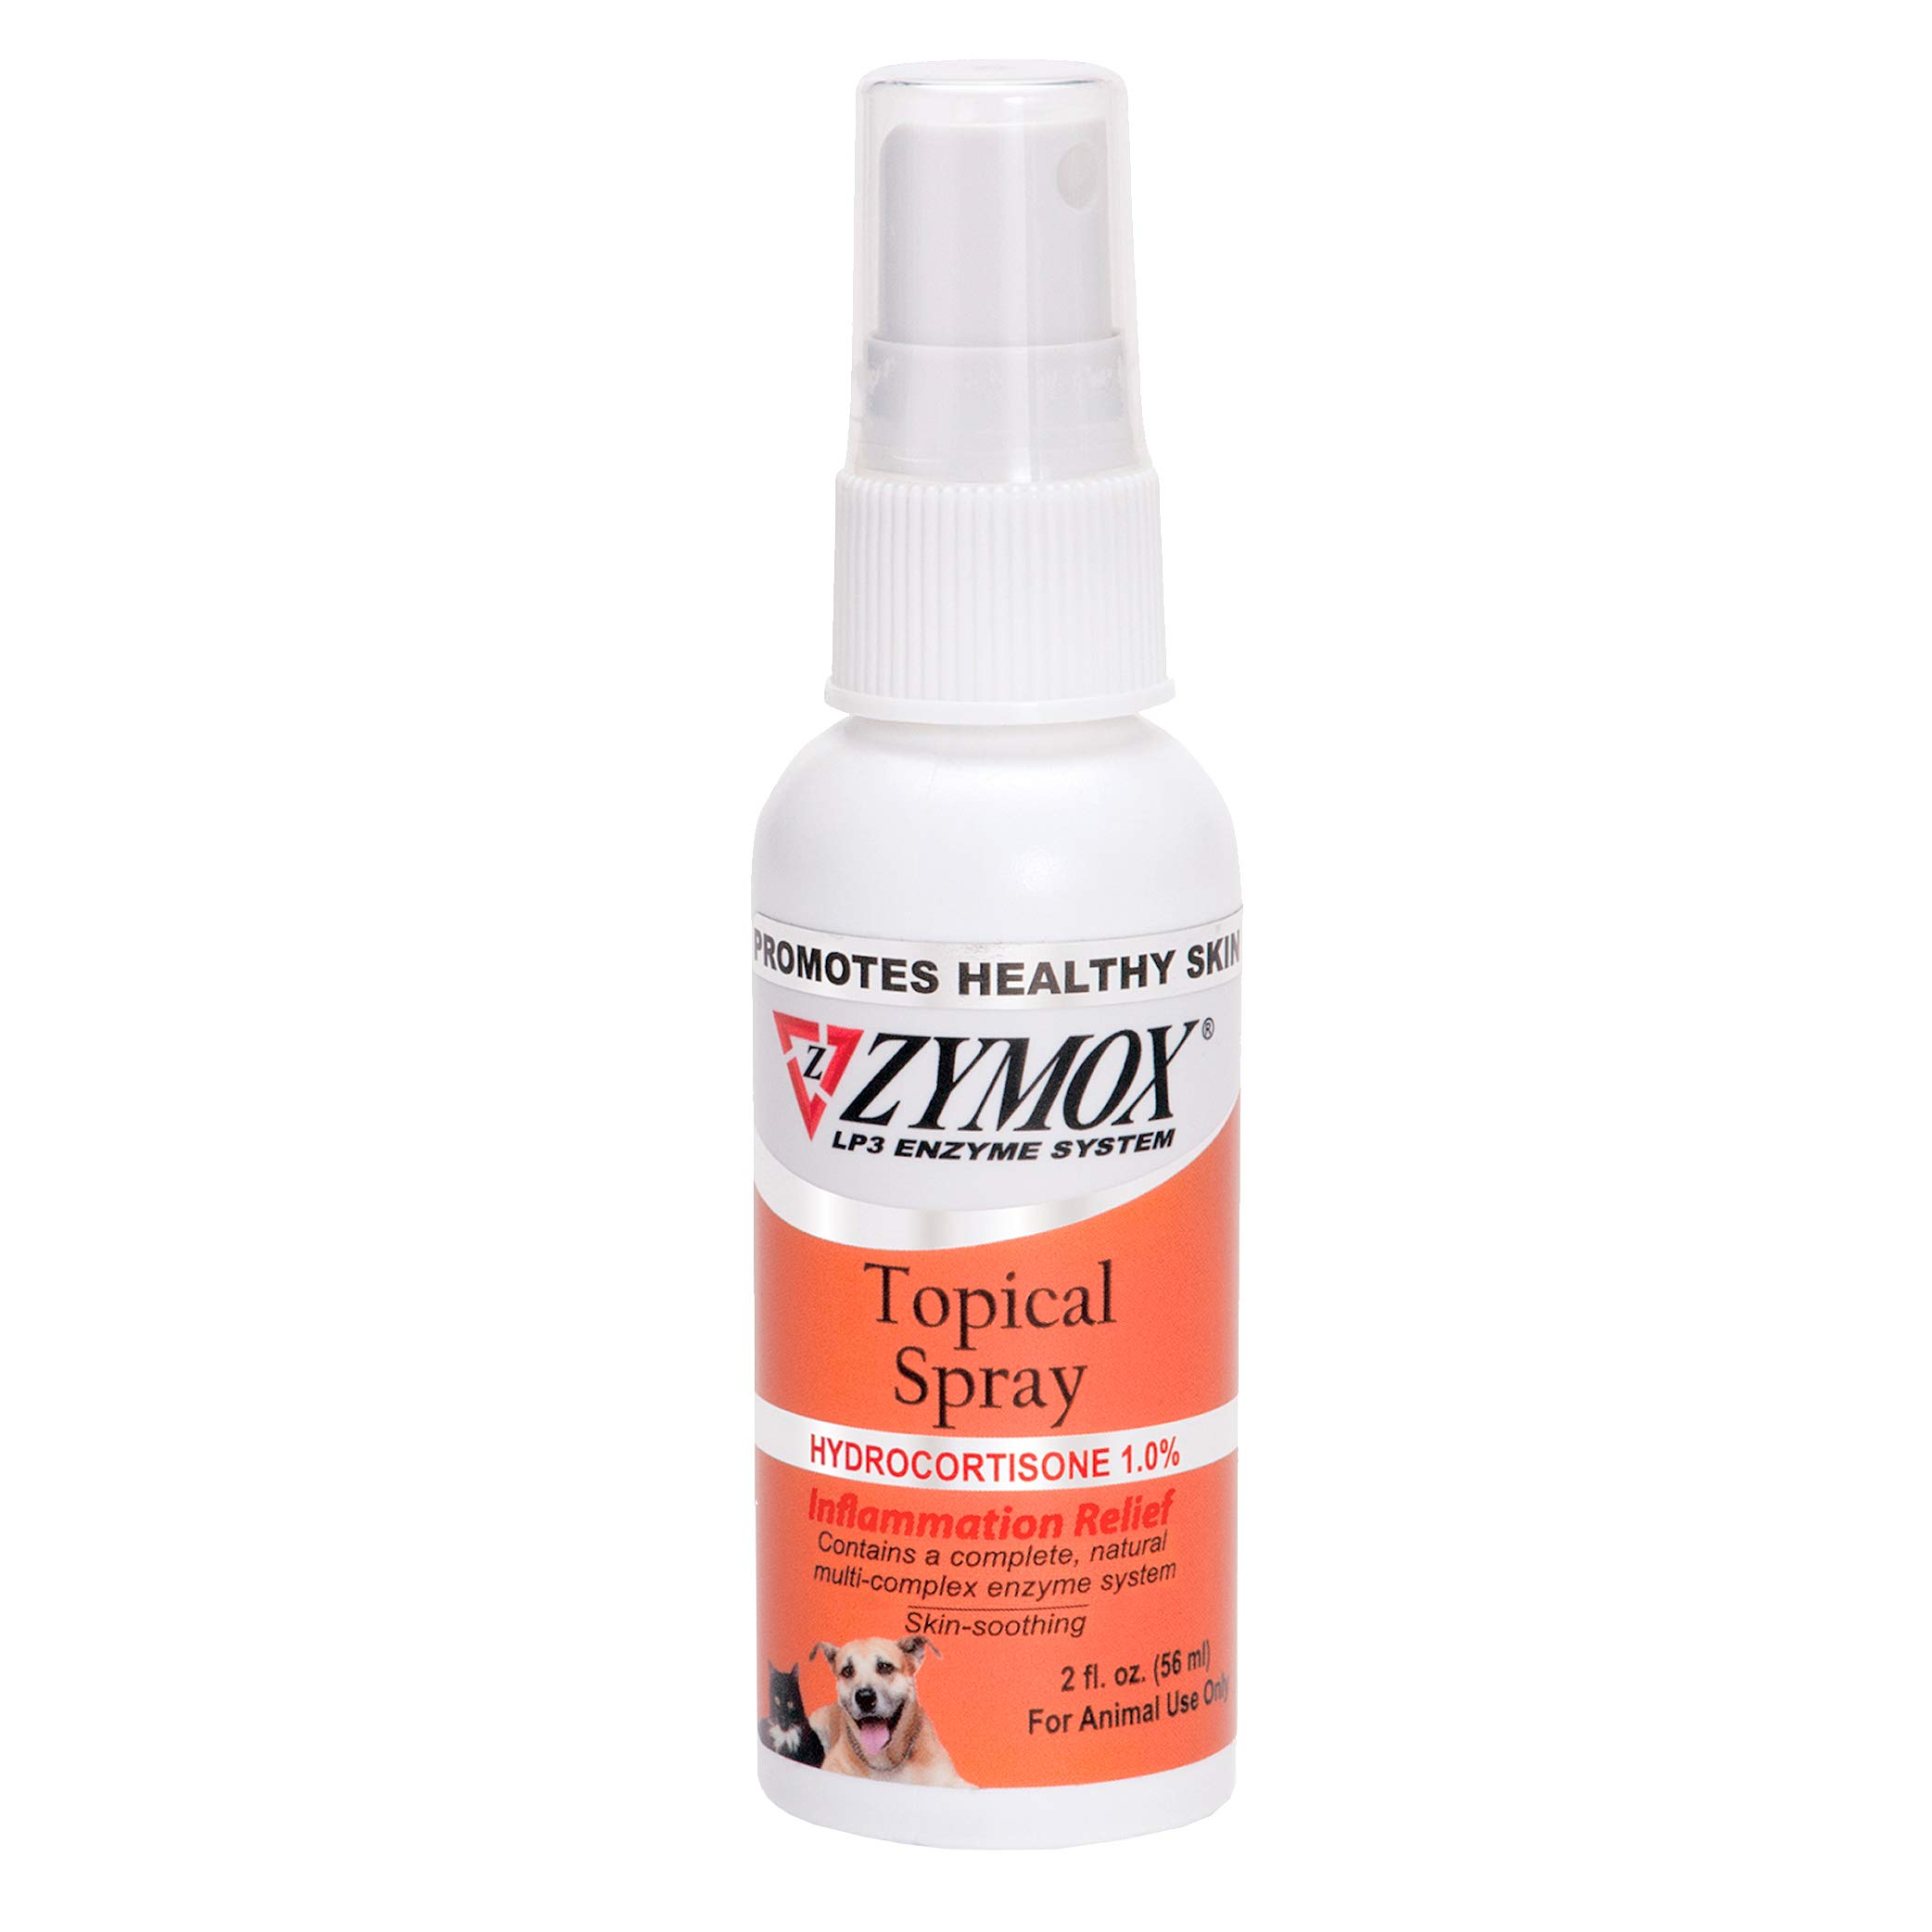 Zymox Topical Hot Spot Spray for Dogs and Cats with 1% Hydrocortisone, 2oz